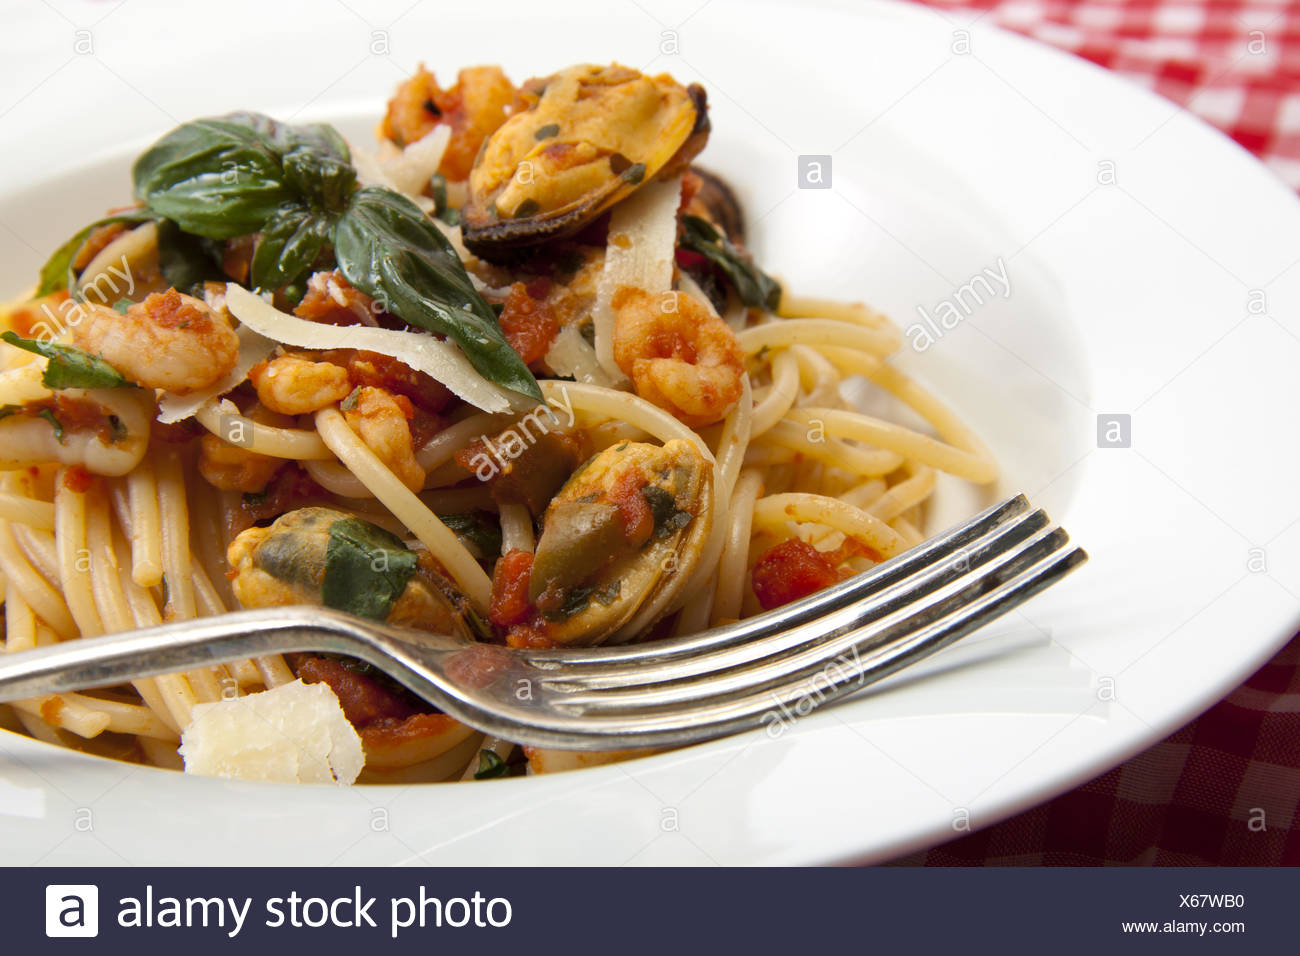 Spaghetti with a tomato and seafood souse - Stock Image